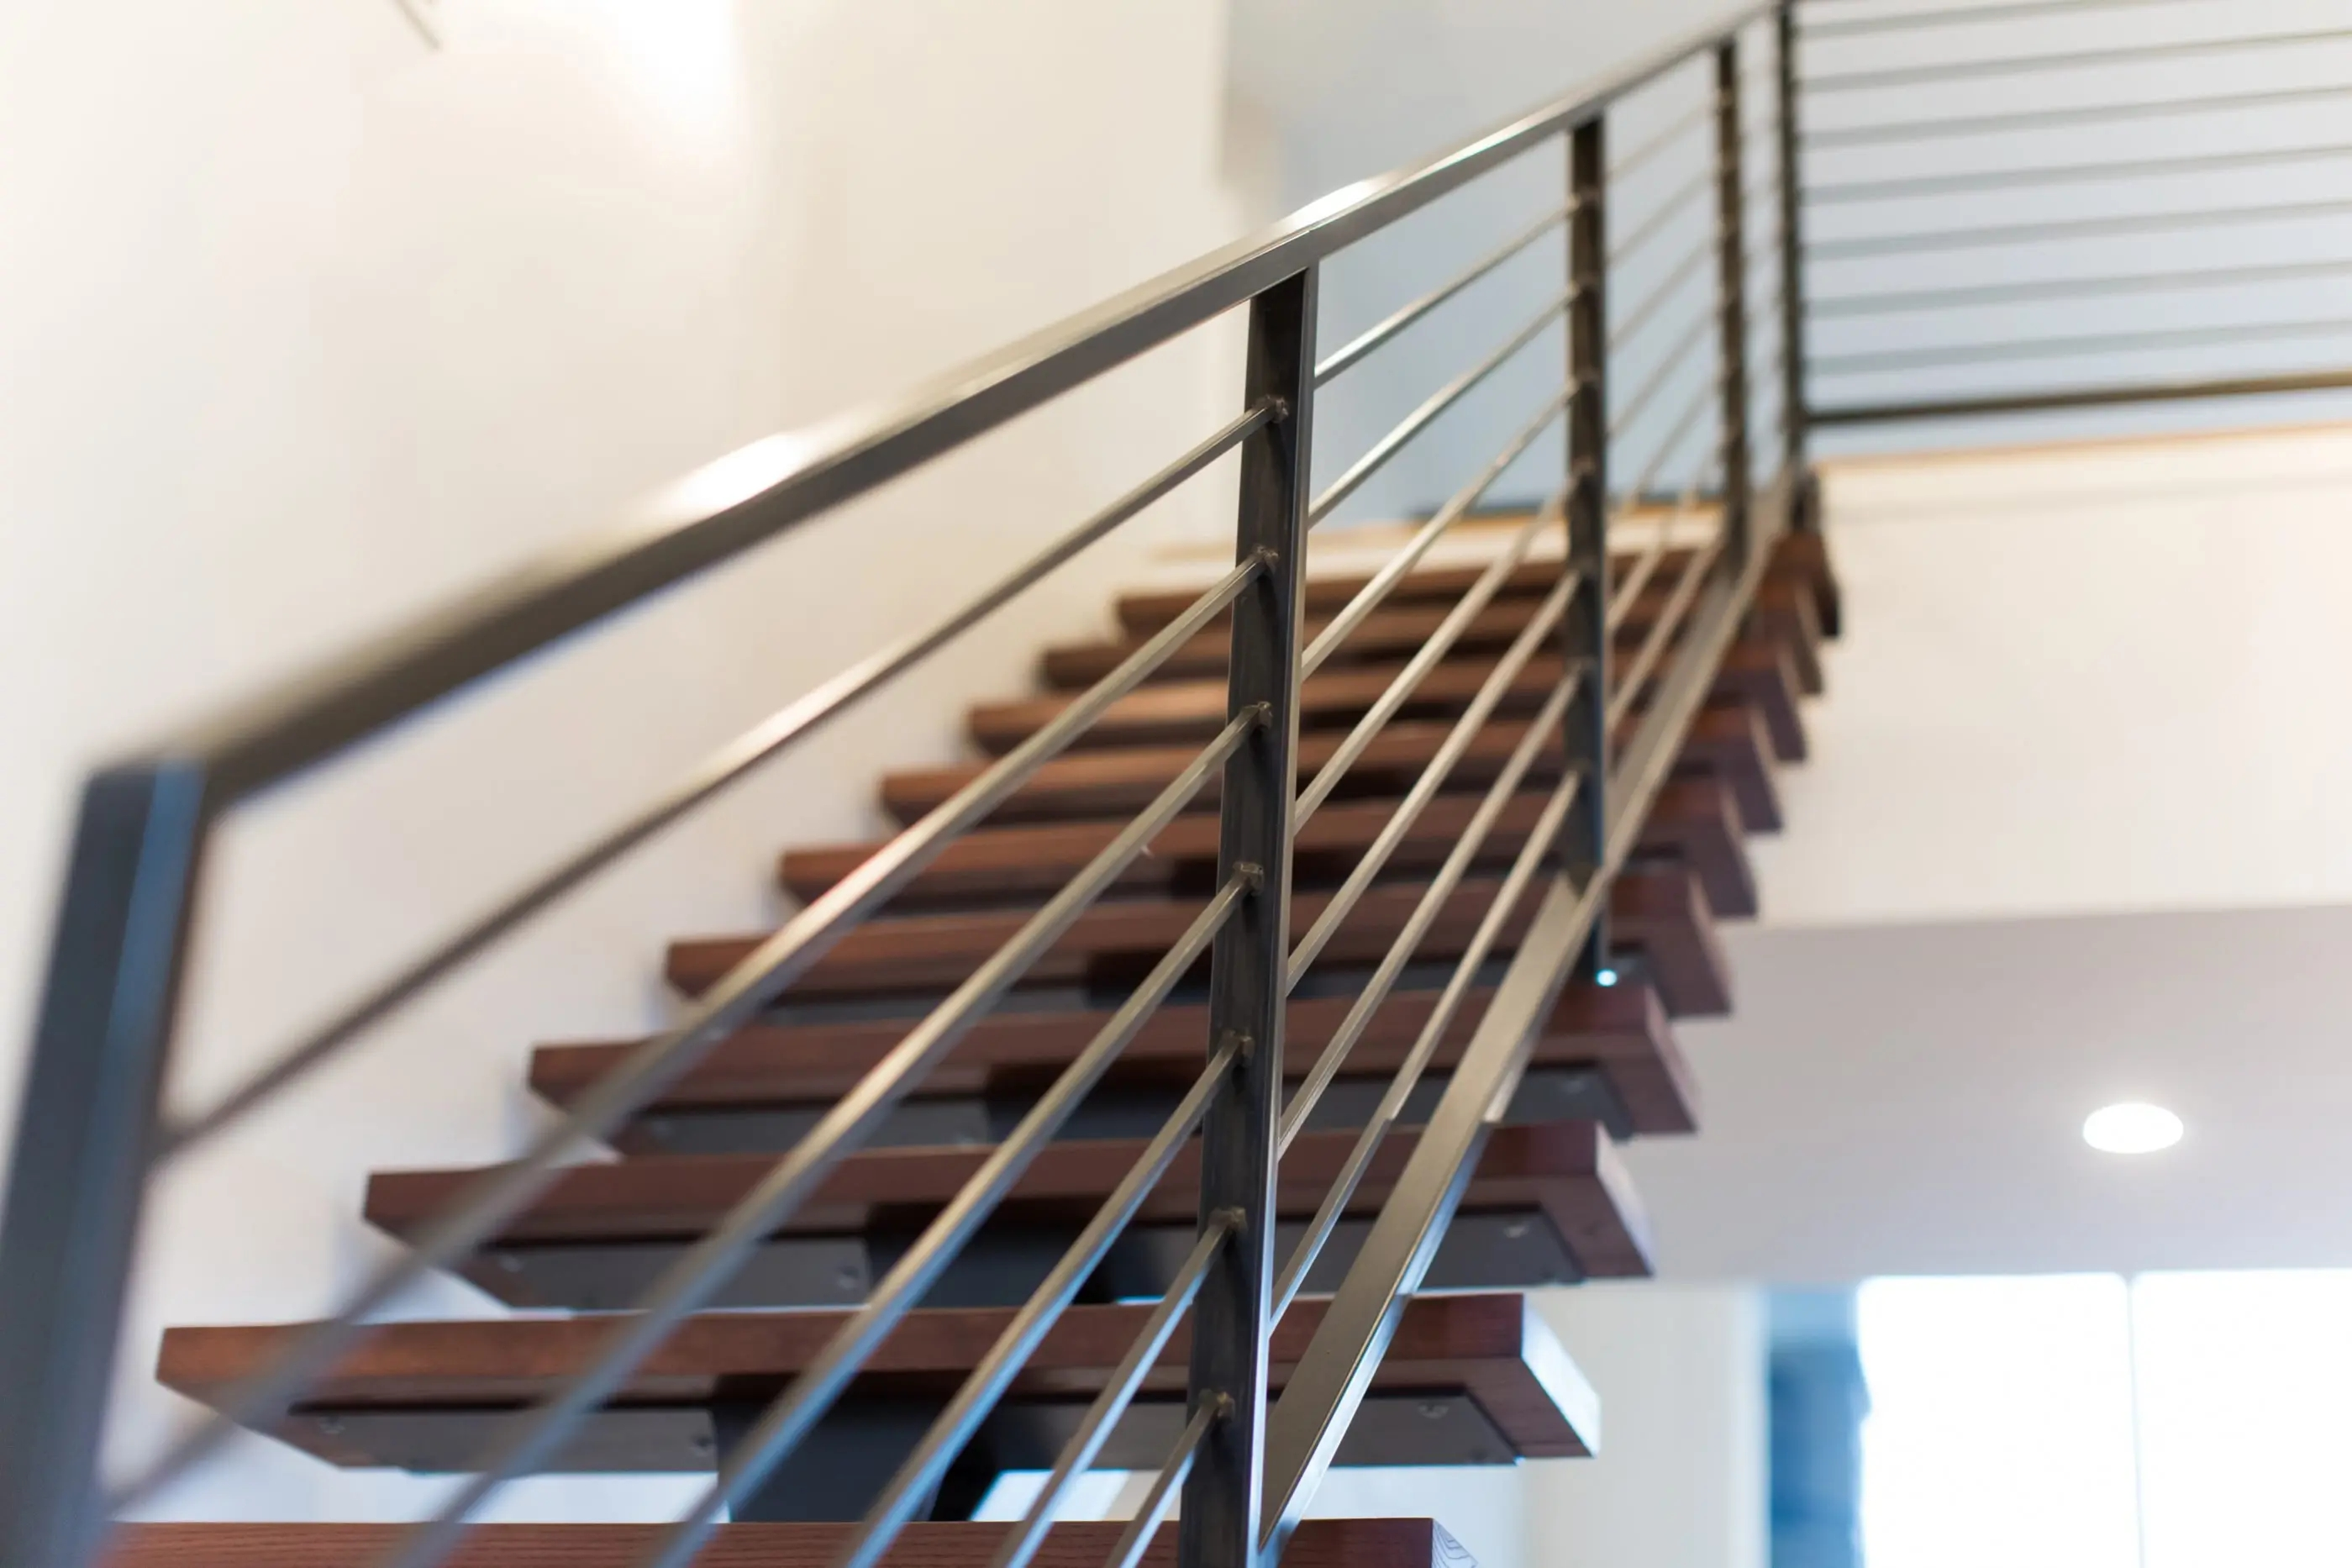 Wood For Stair Treads How To Choose The Right One Aco   Prefinished Walnut Stair Treads   Wood Stair   Walnut Ipe   Butcher Block   Stair Parts   Hardwood